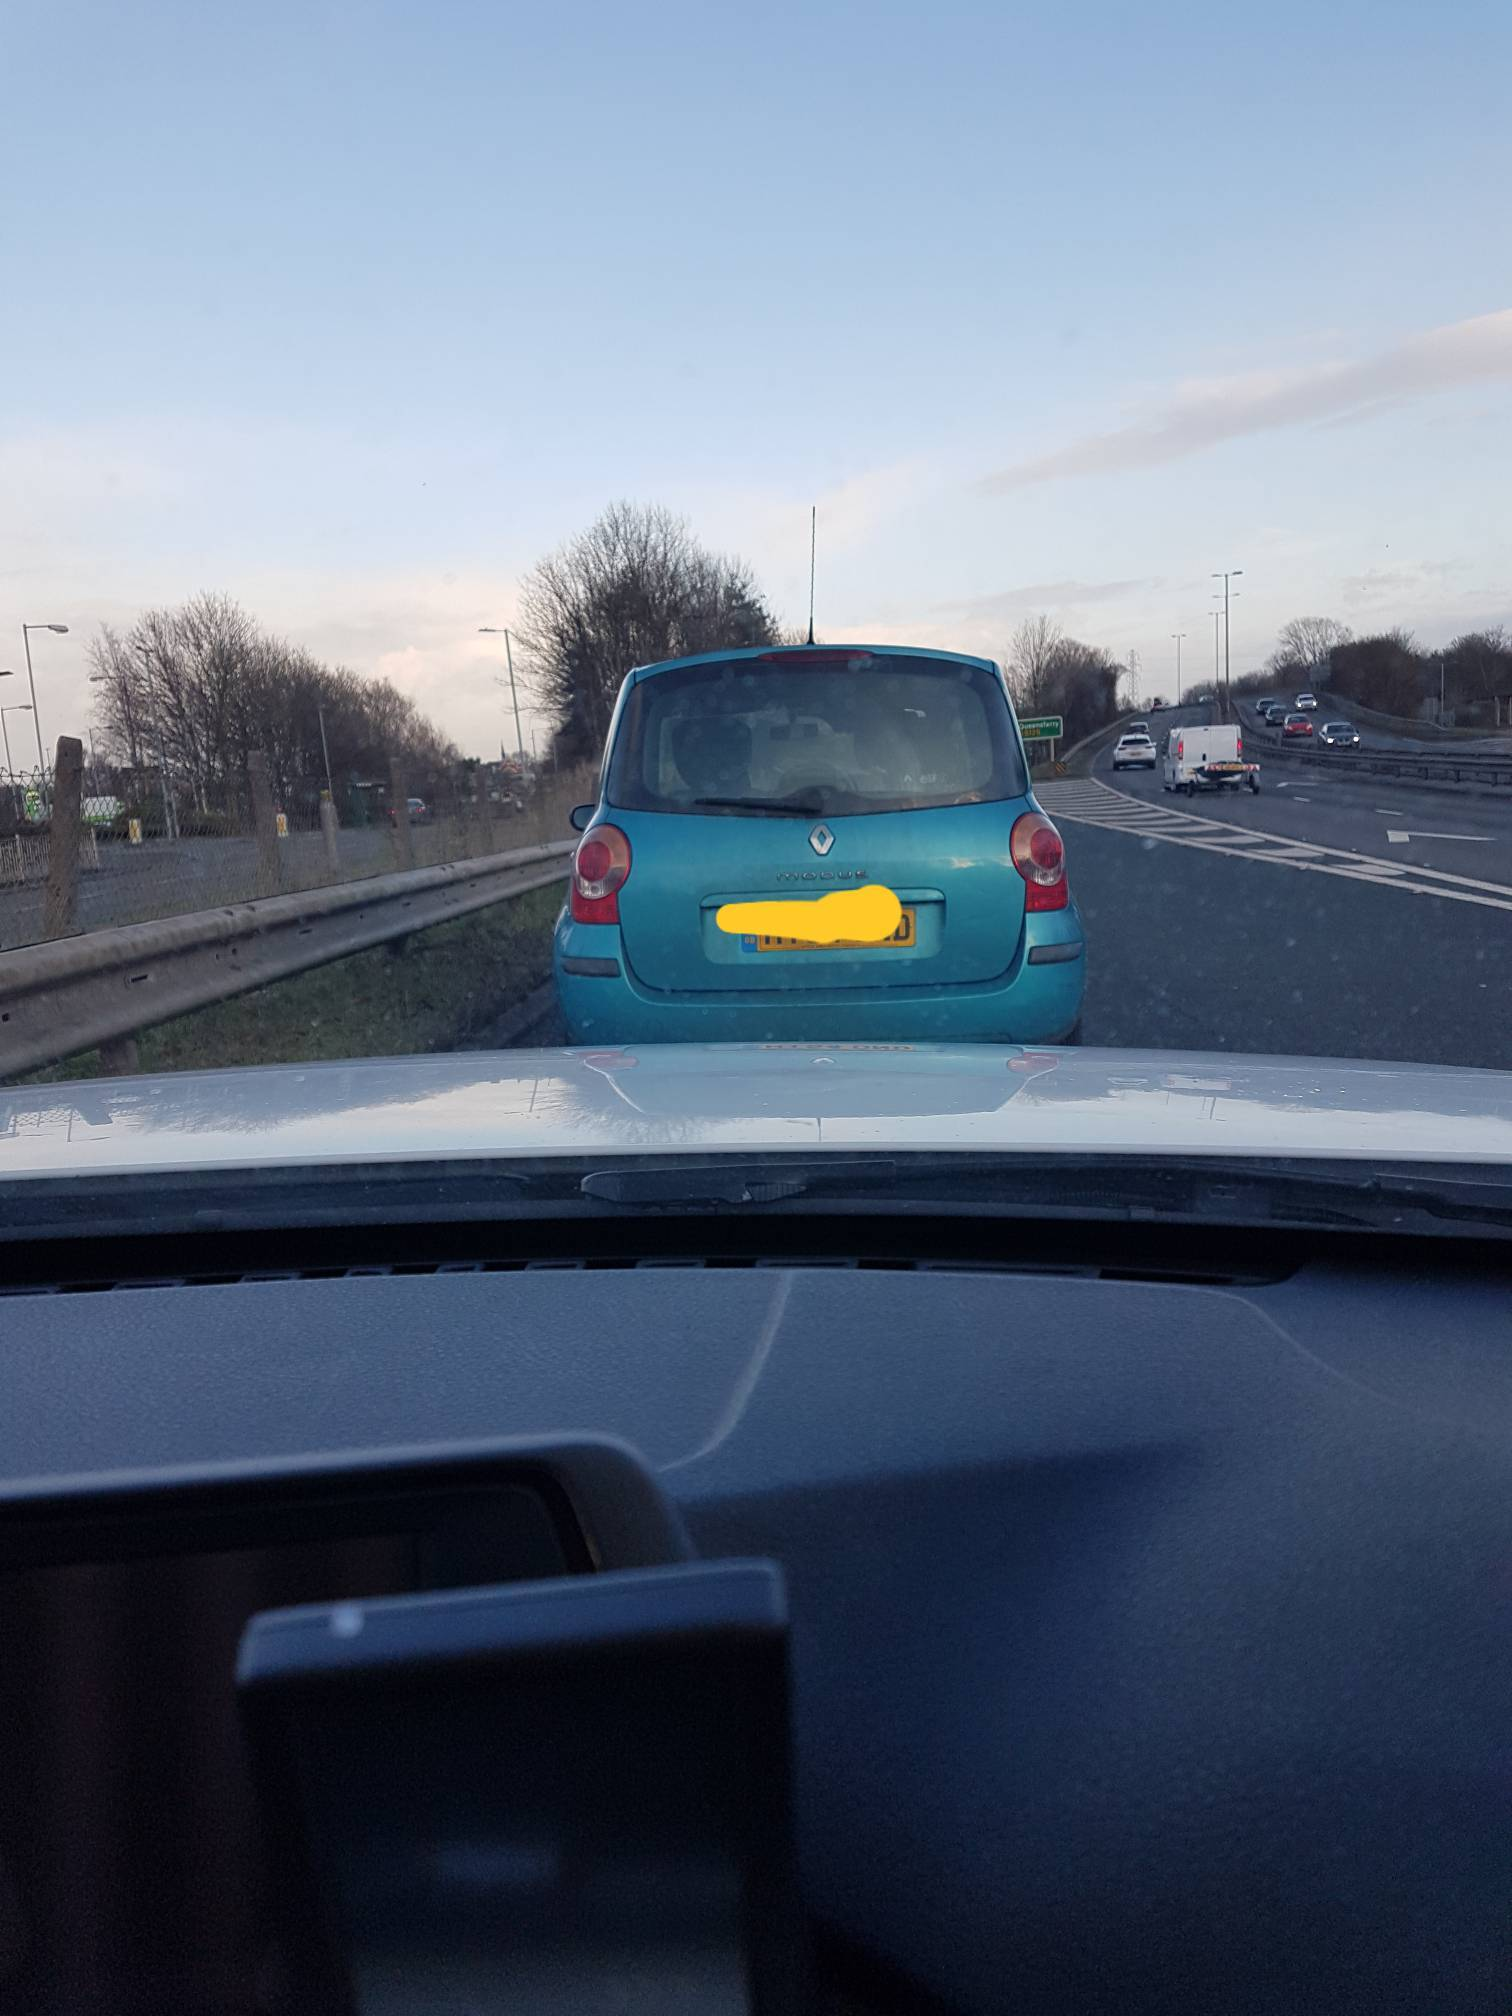 Woman caught 'intoxicated' behind the wheel on A494 in Queensferry